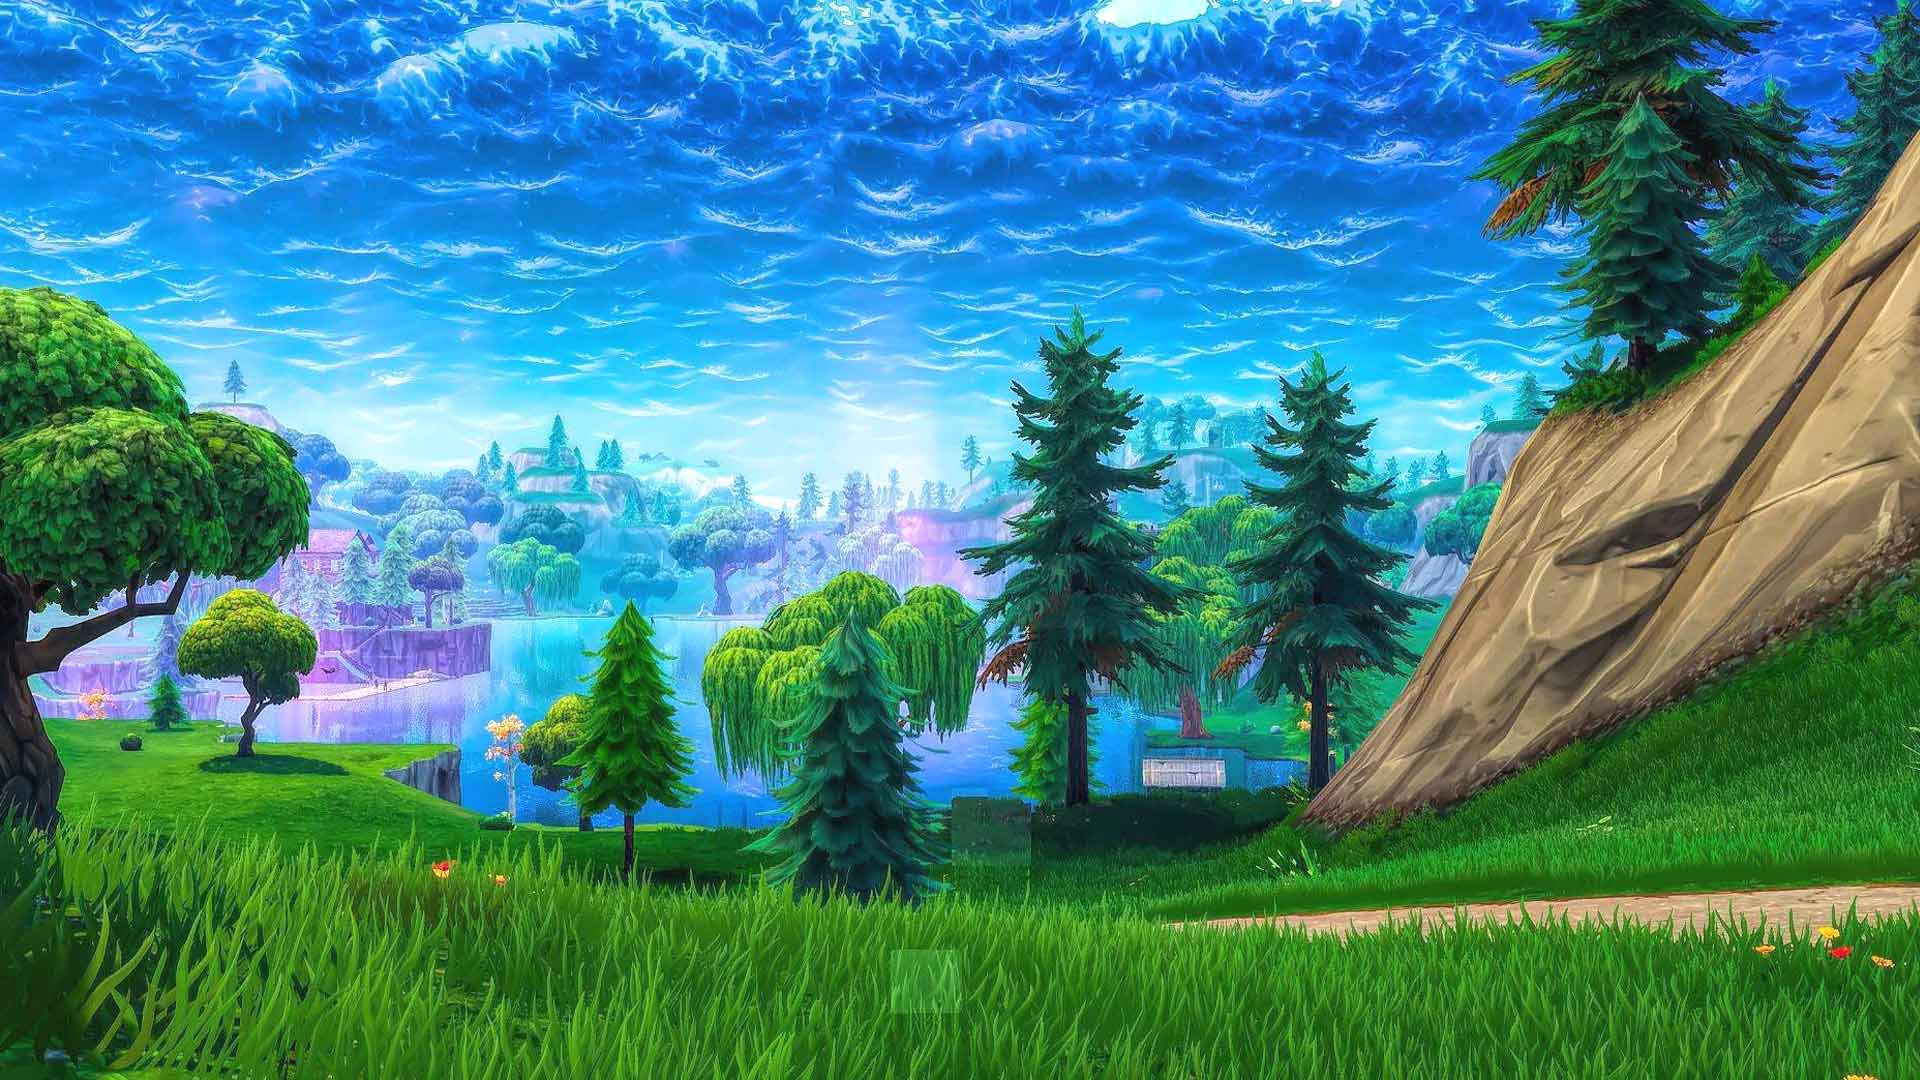 Fortnite Zoom Background Images Free Virtual Meeting Backgrounds 1920x1080 video game fortnite hd wallpaper background image. fortnite zoom background images free